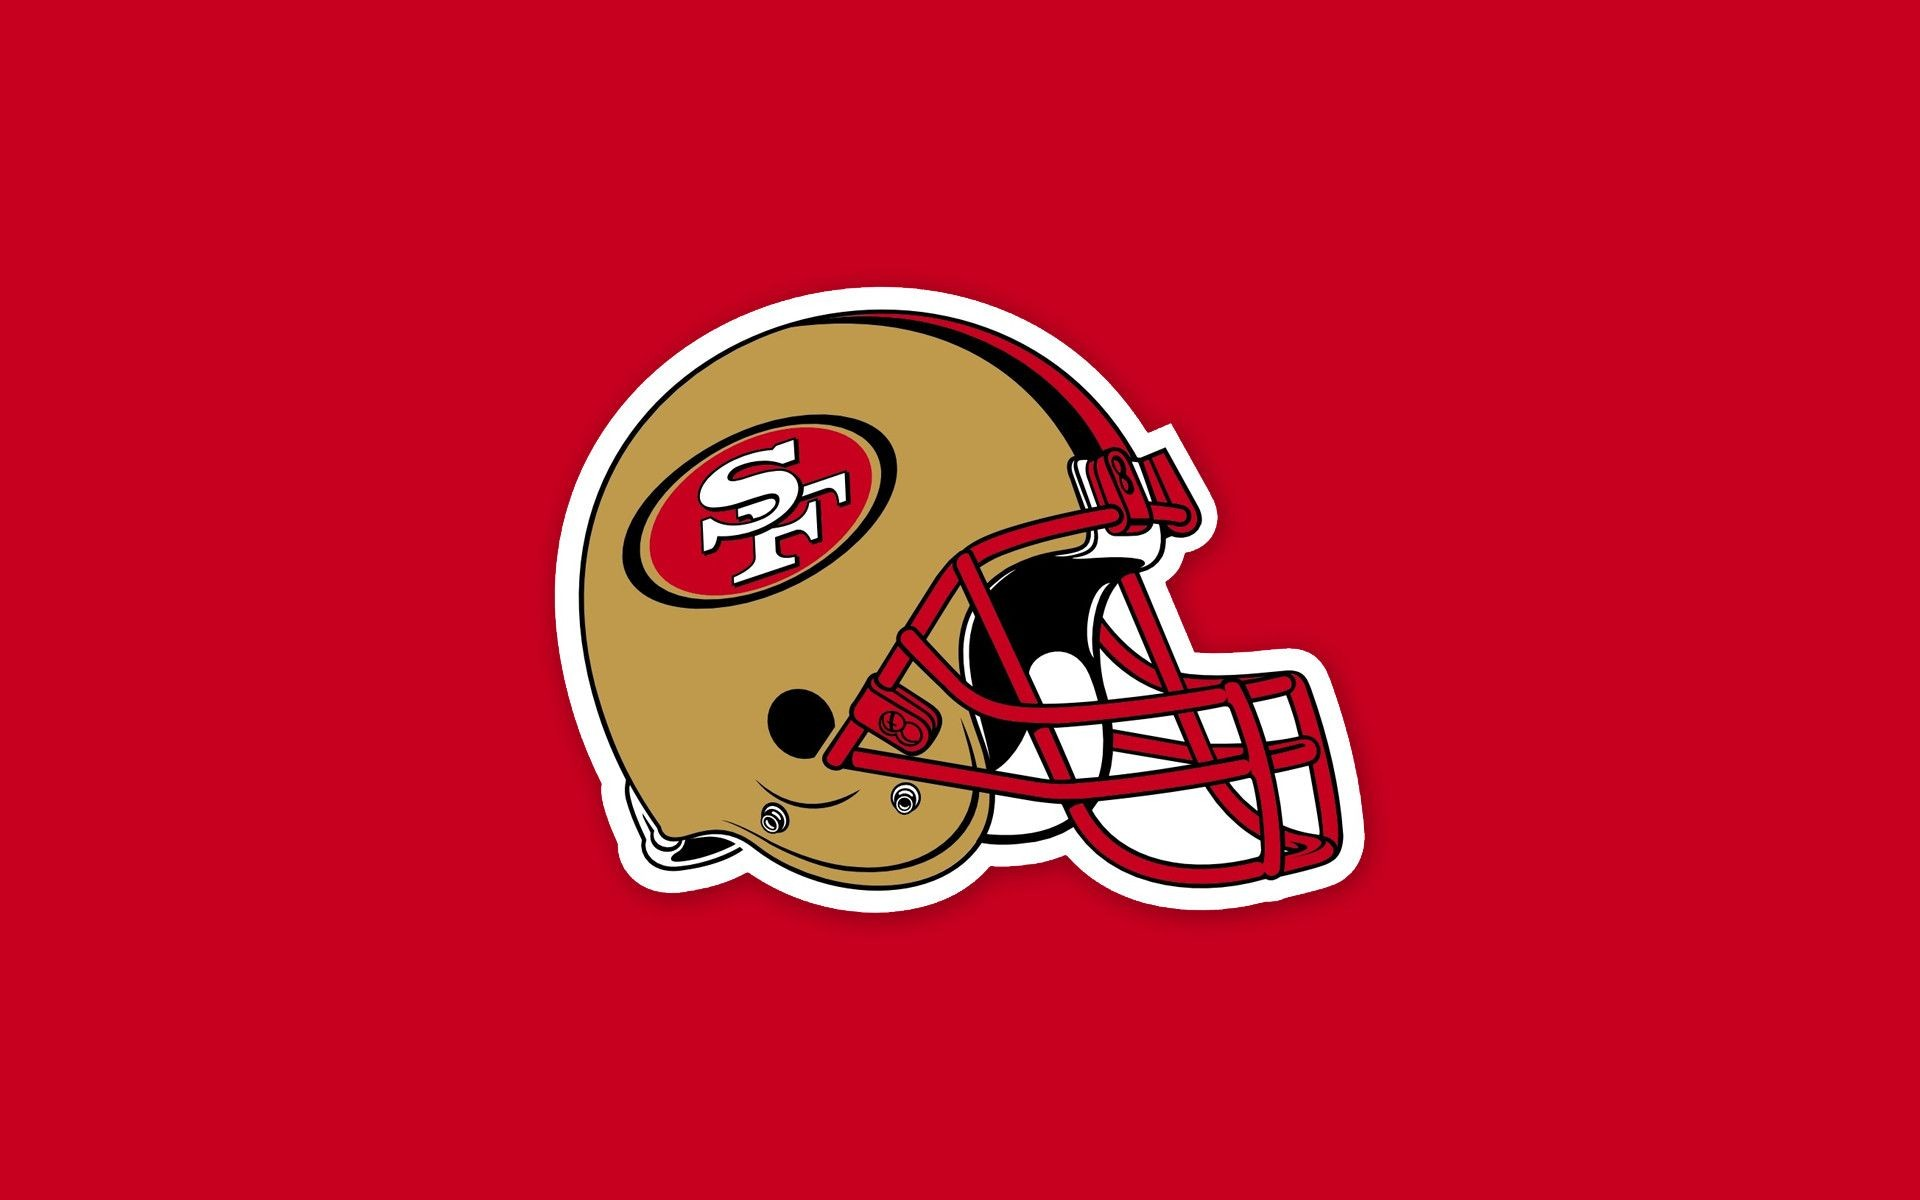 49ers wallpaper download free cool hd backgrounds for desktop 49ers wallpaper voltagebd Choice Image